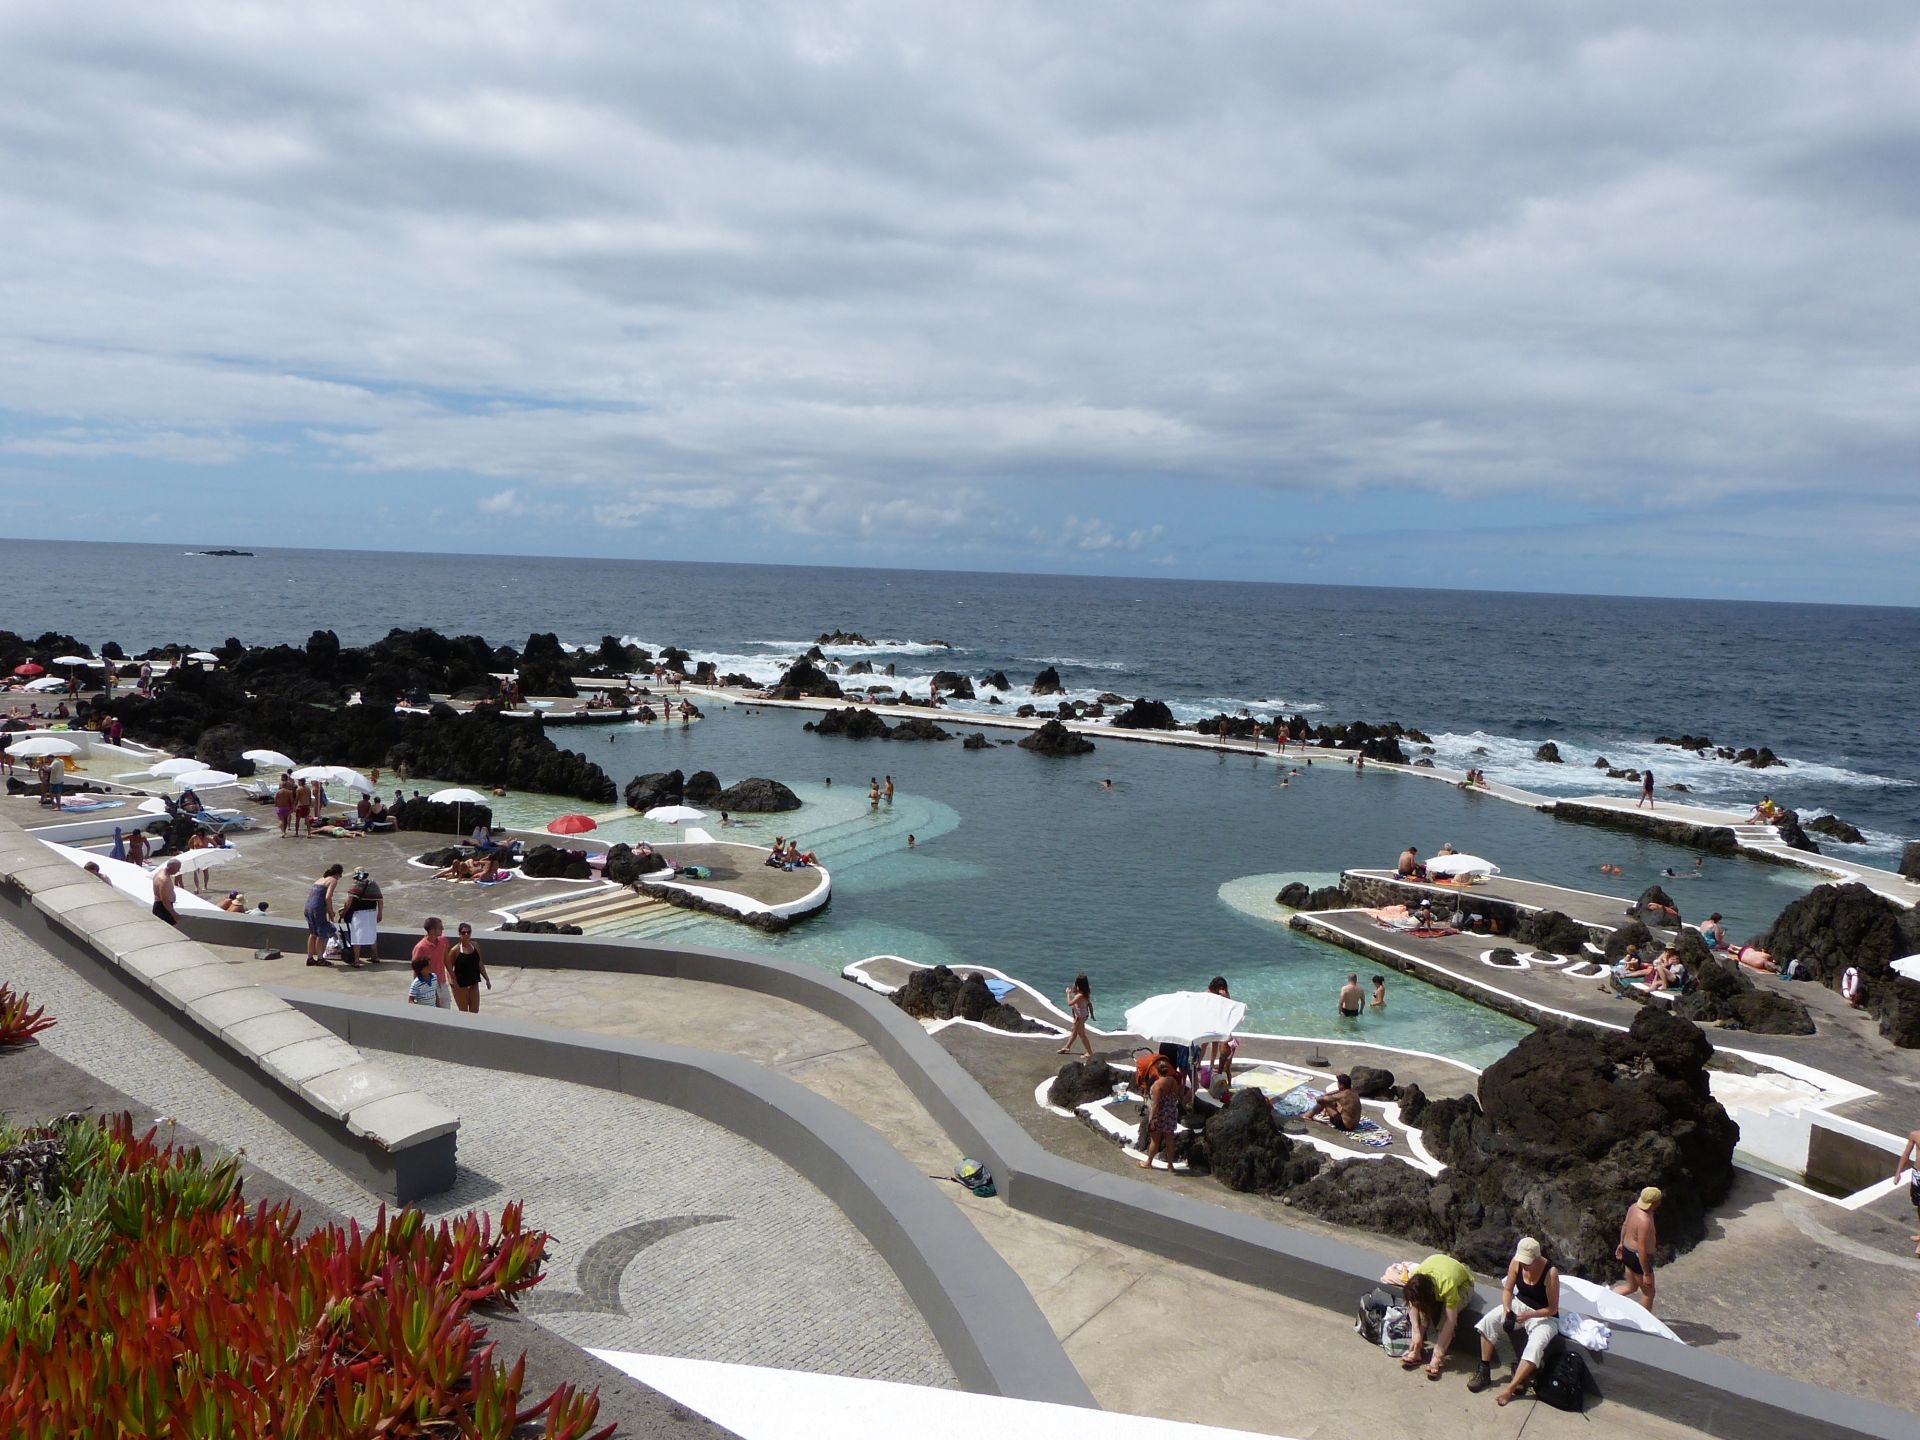 Naturbad in Porto Moniz